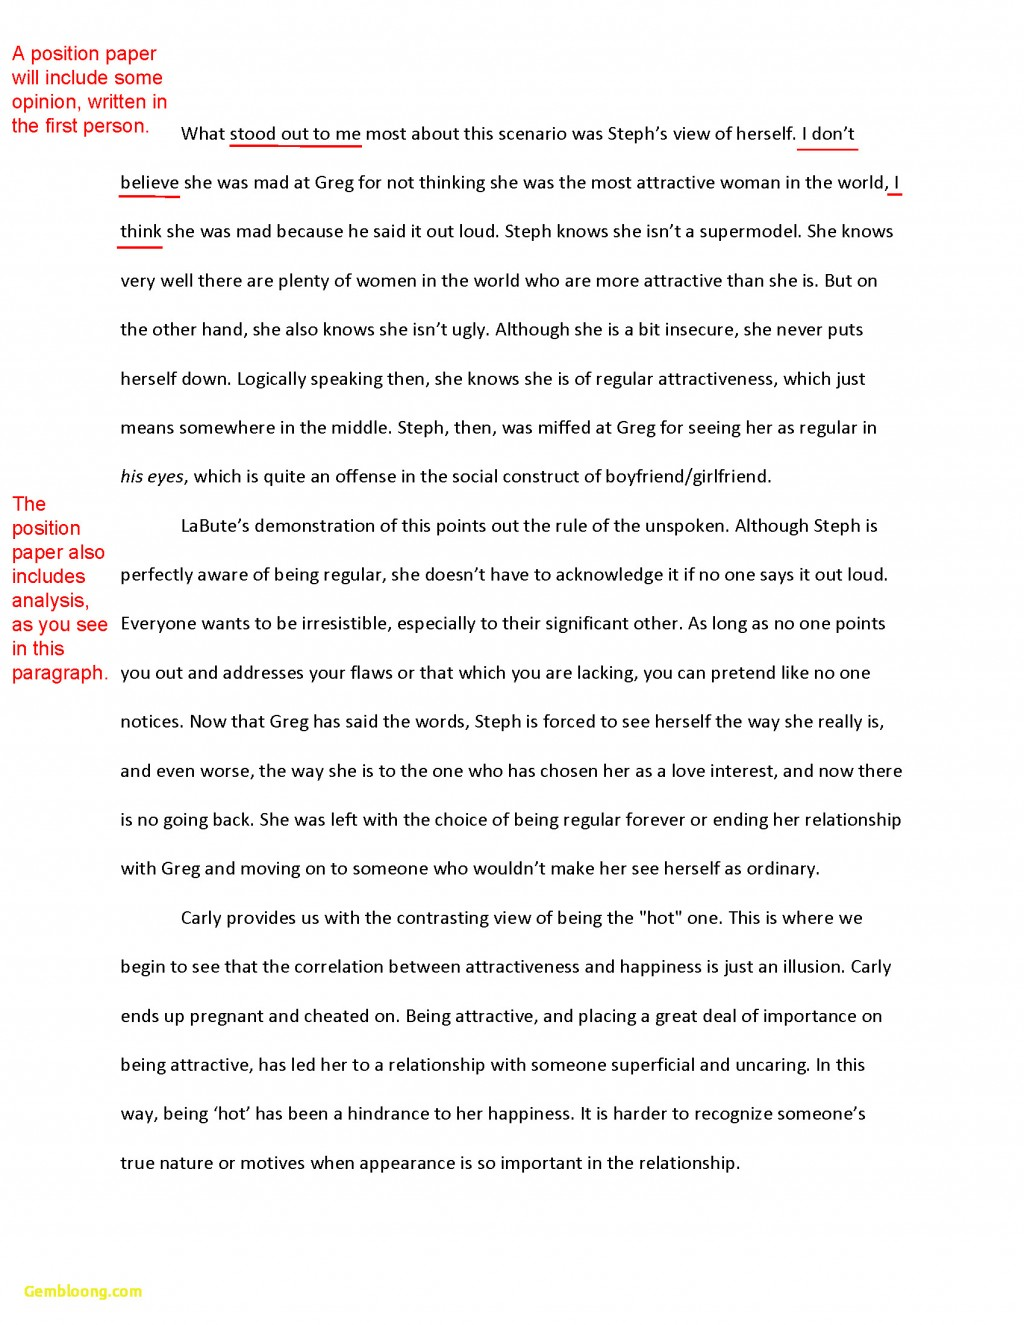 005 Apa Format Essay Example Sample New How To Write Response Paper Stupendous Pdf Title Page Purdue Owl Large